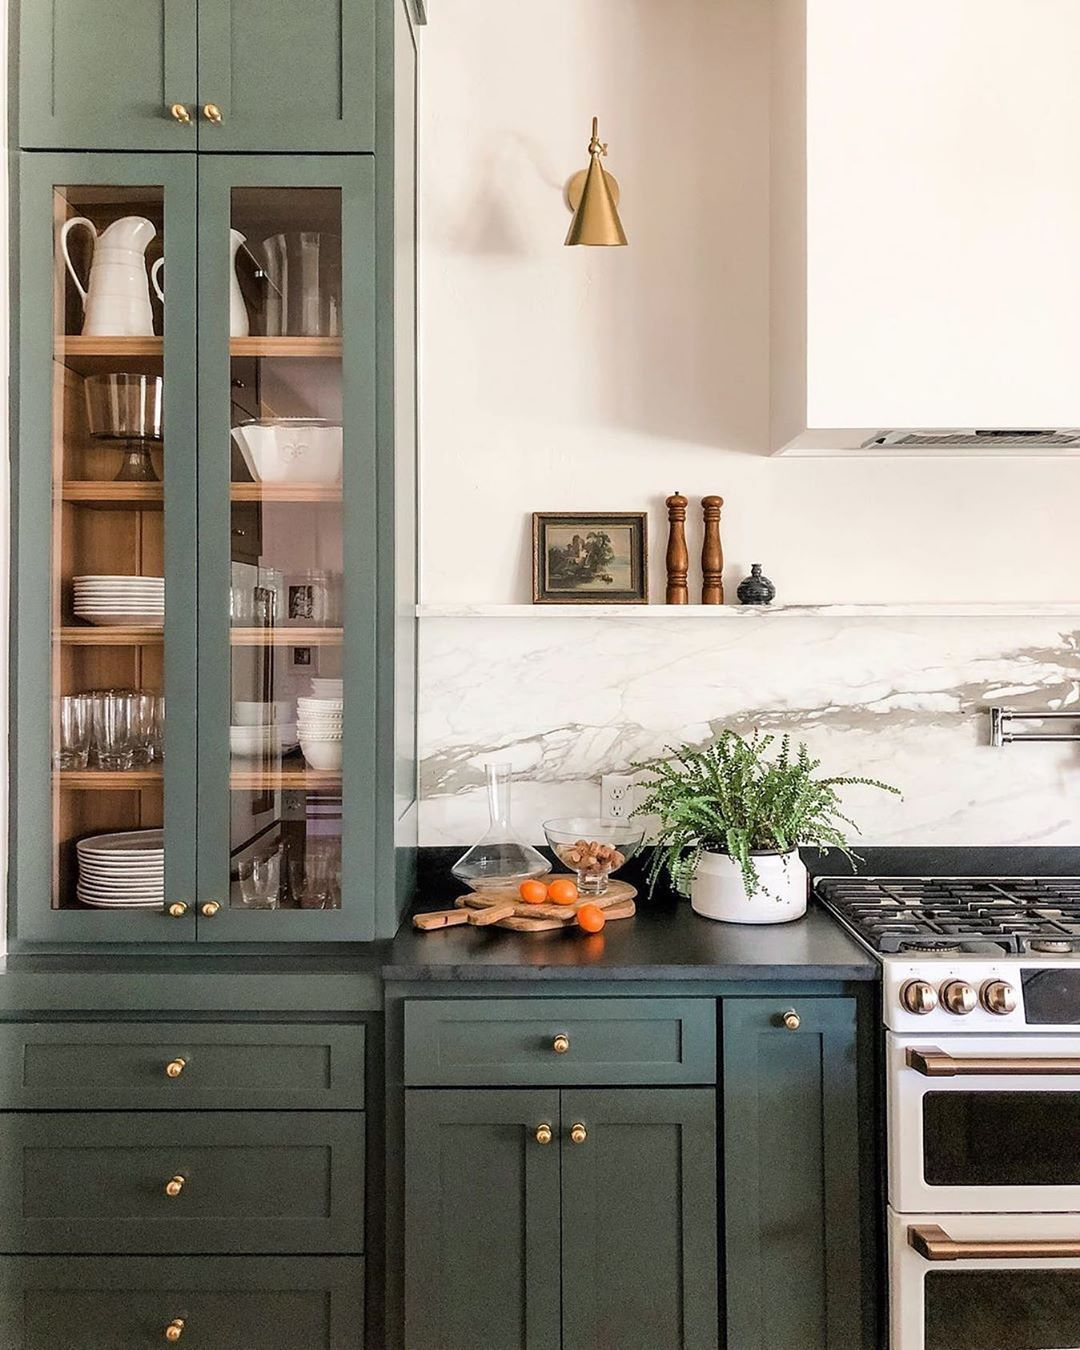 Rejuvenation On Instagram For Something You Touch As Often As Cabinet Hardware You Re Going To W Green Kitchen Cabinets Kitchen Interior Diy Kitchen Remodel